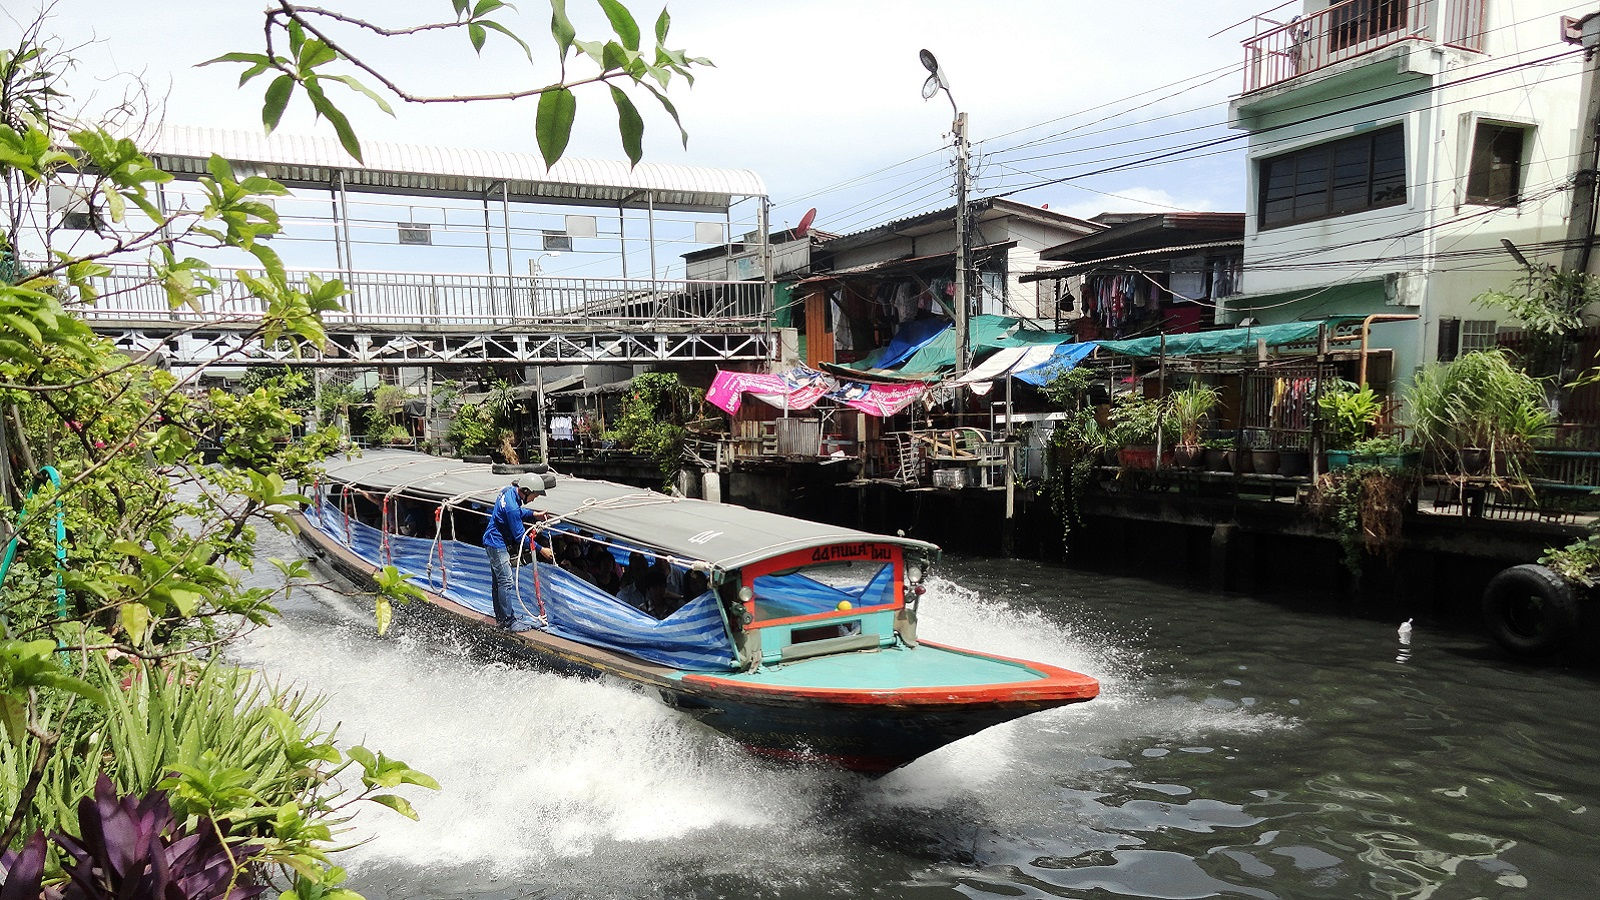 Long Tail Boat Ride - Royal Orchid Sheraton Hotel & Tower Bangkok